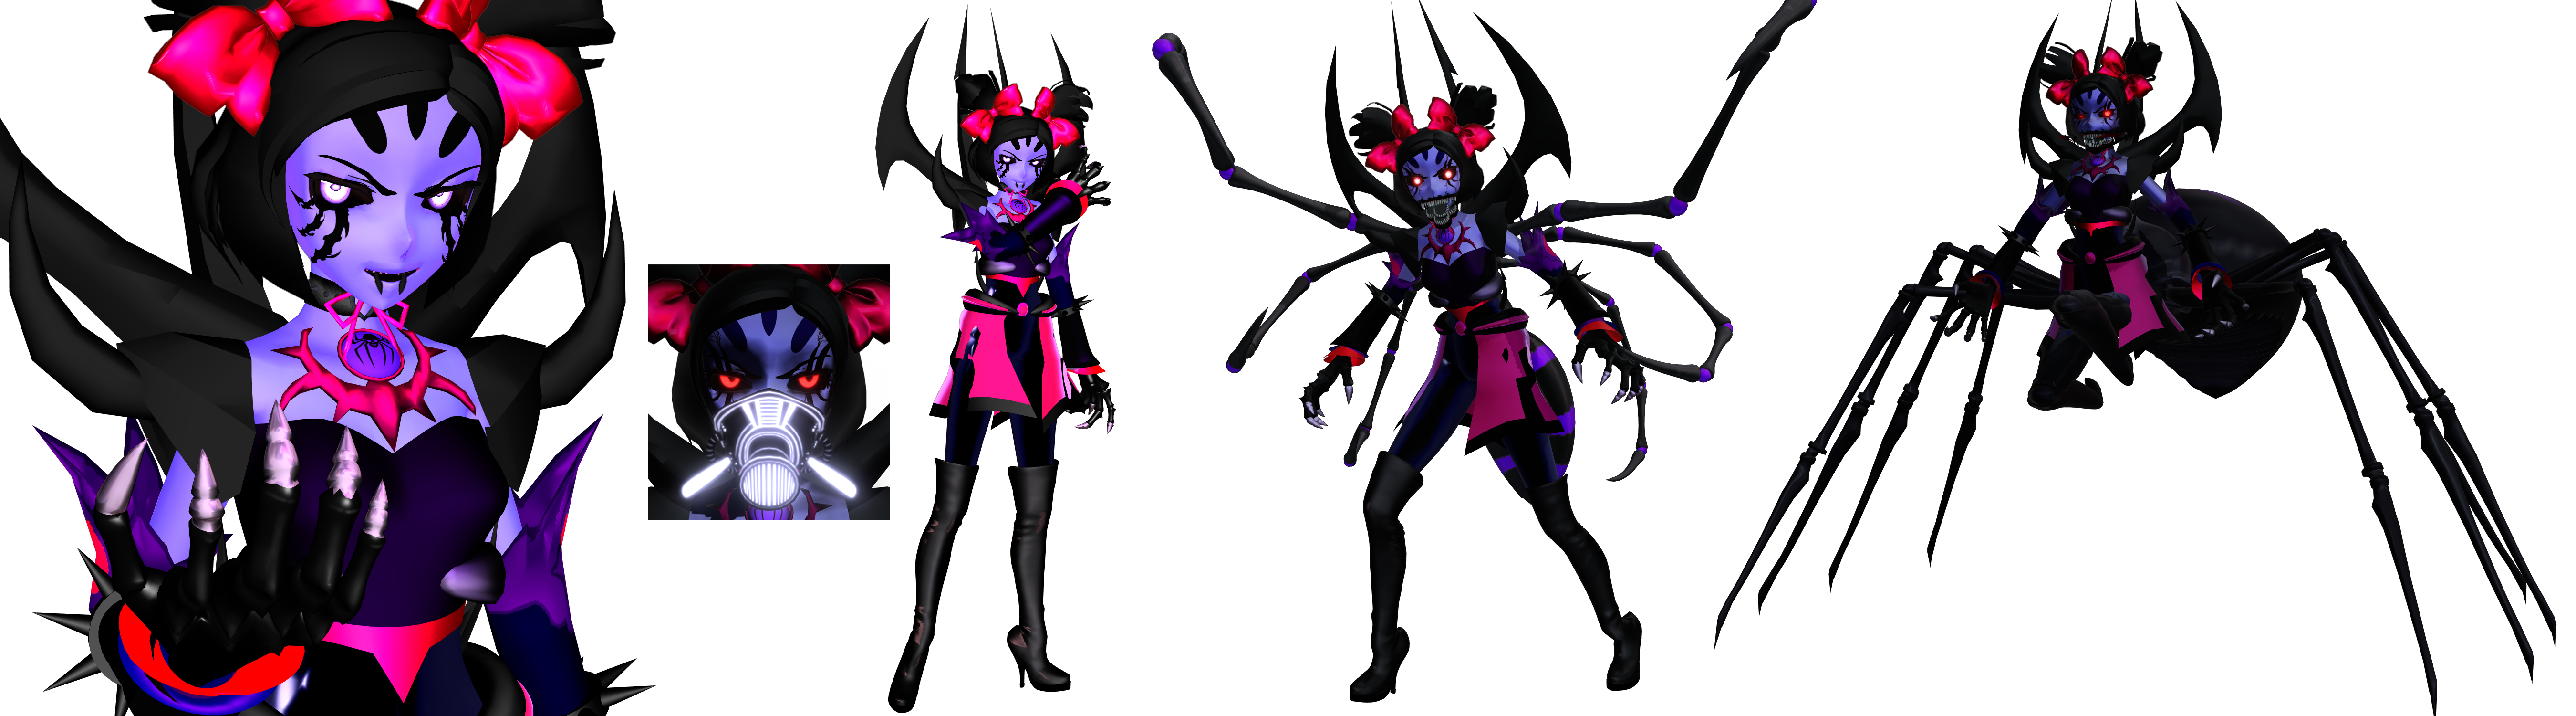 [MMD] Monster Muffet Updated (Undertale) by DrStinger